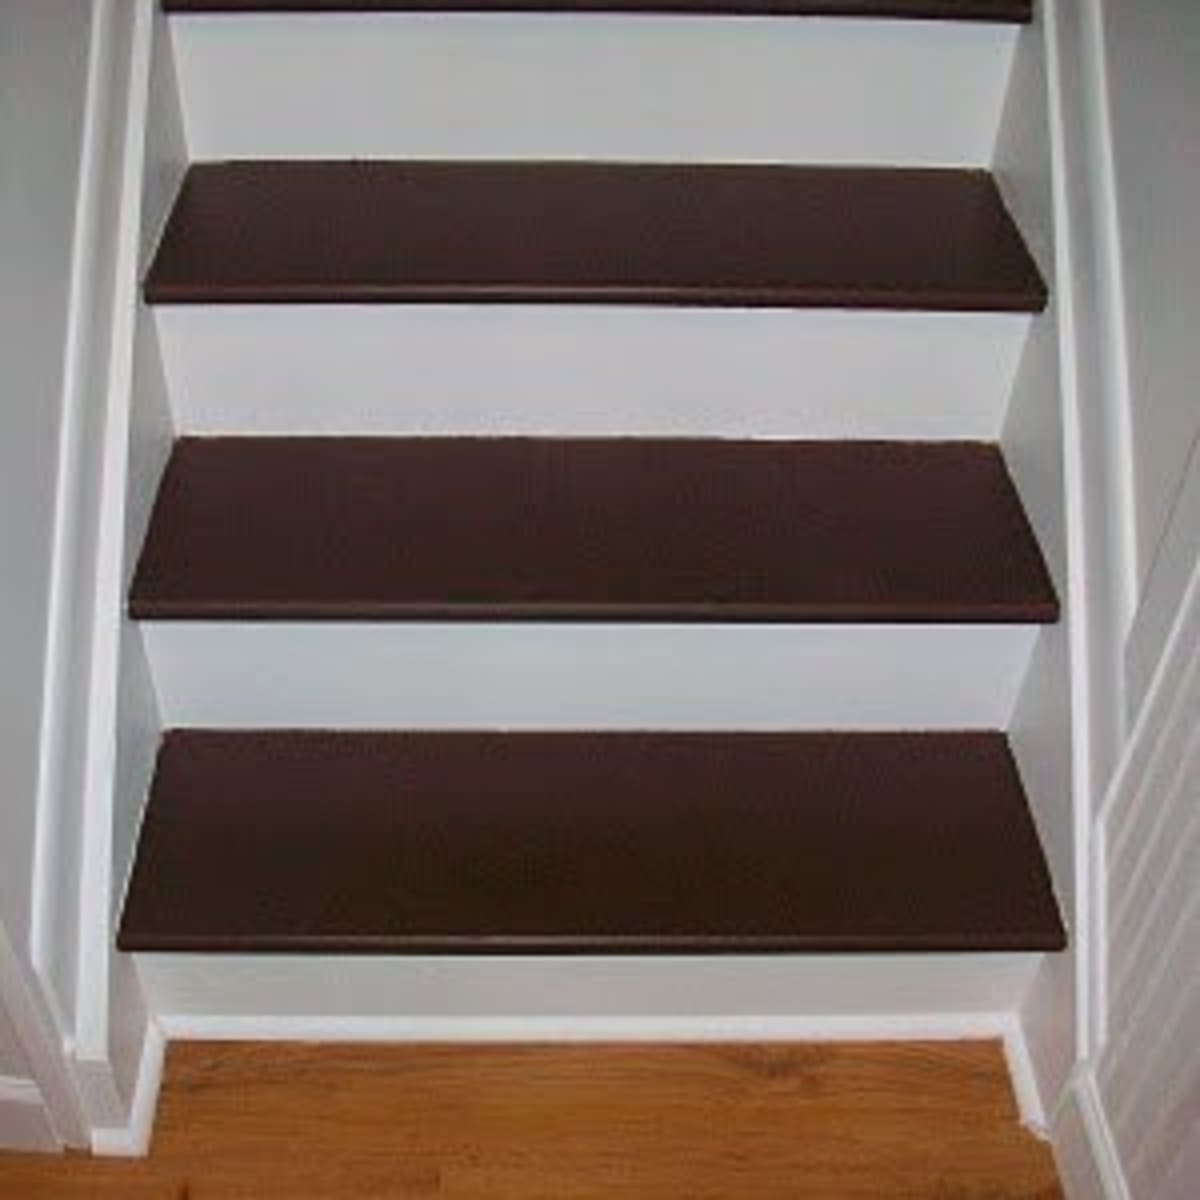 How To Paint And Refinish Your Stairs Dengarden Home And Garden